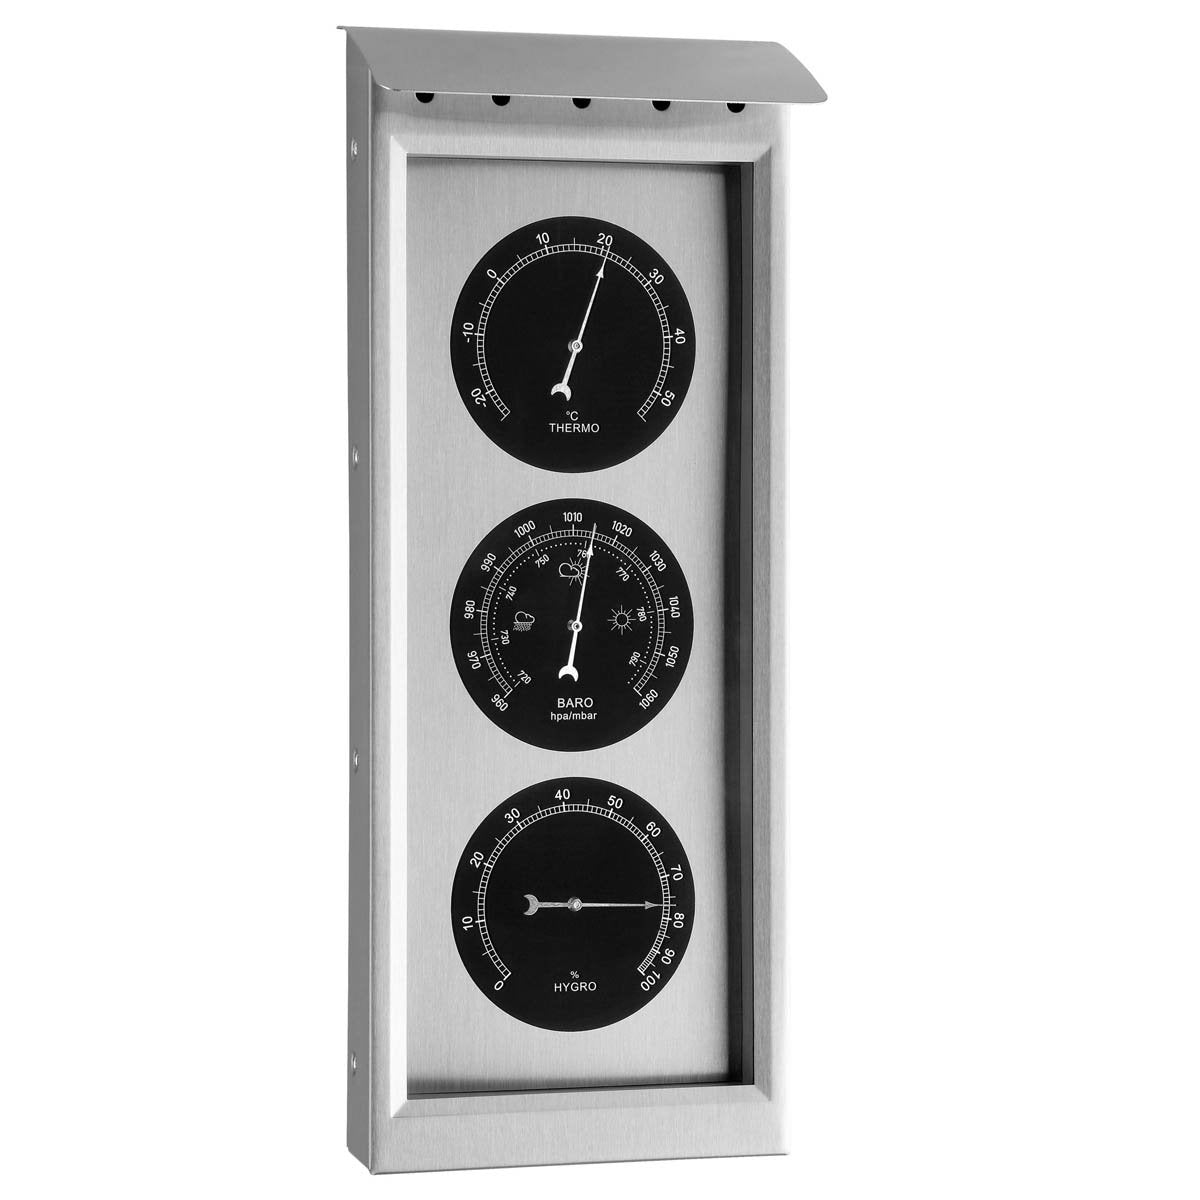 TFA Germany Kyrie Outdoor Stainless Steel Weather Station Silver 36cm 20.2038 1